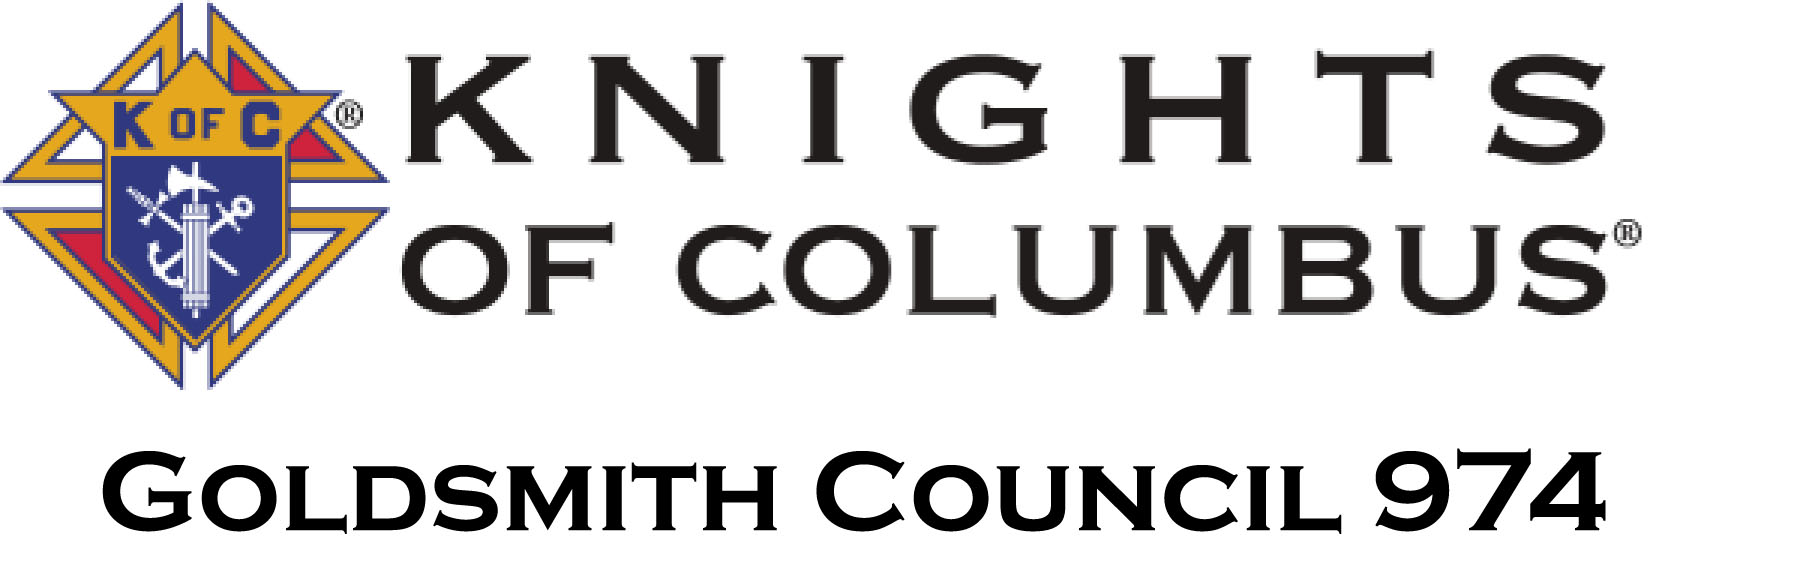 Knights of Columbus Council #974